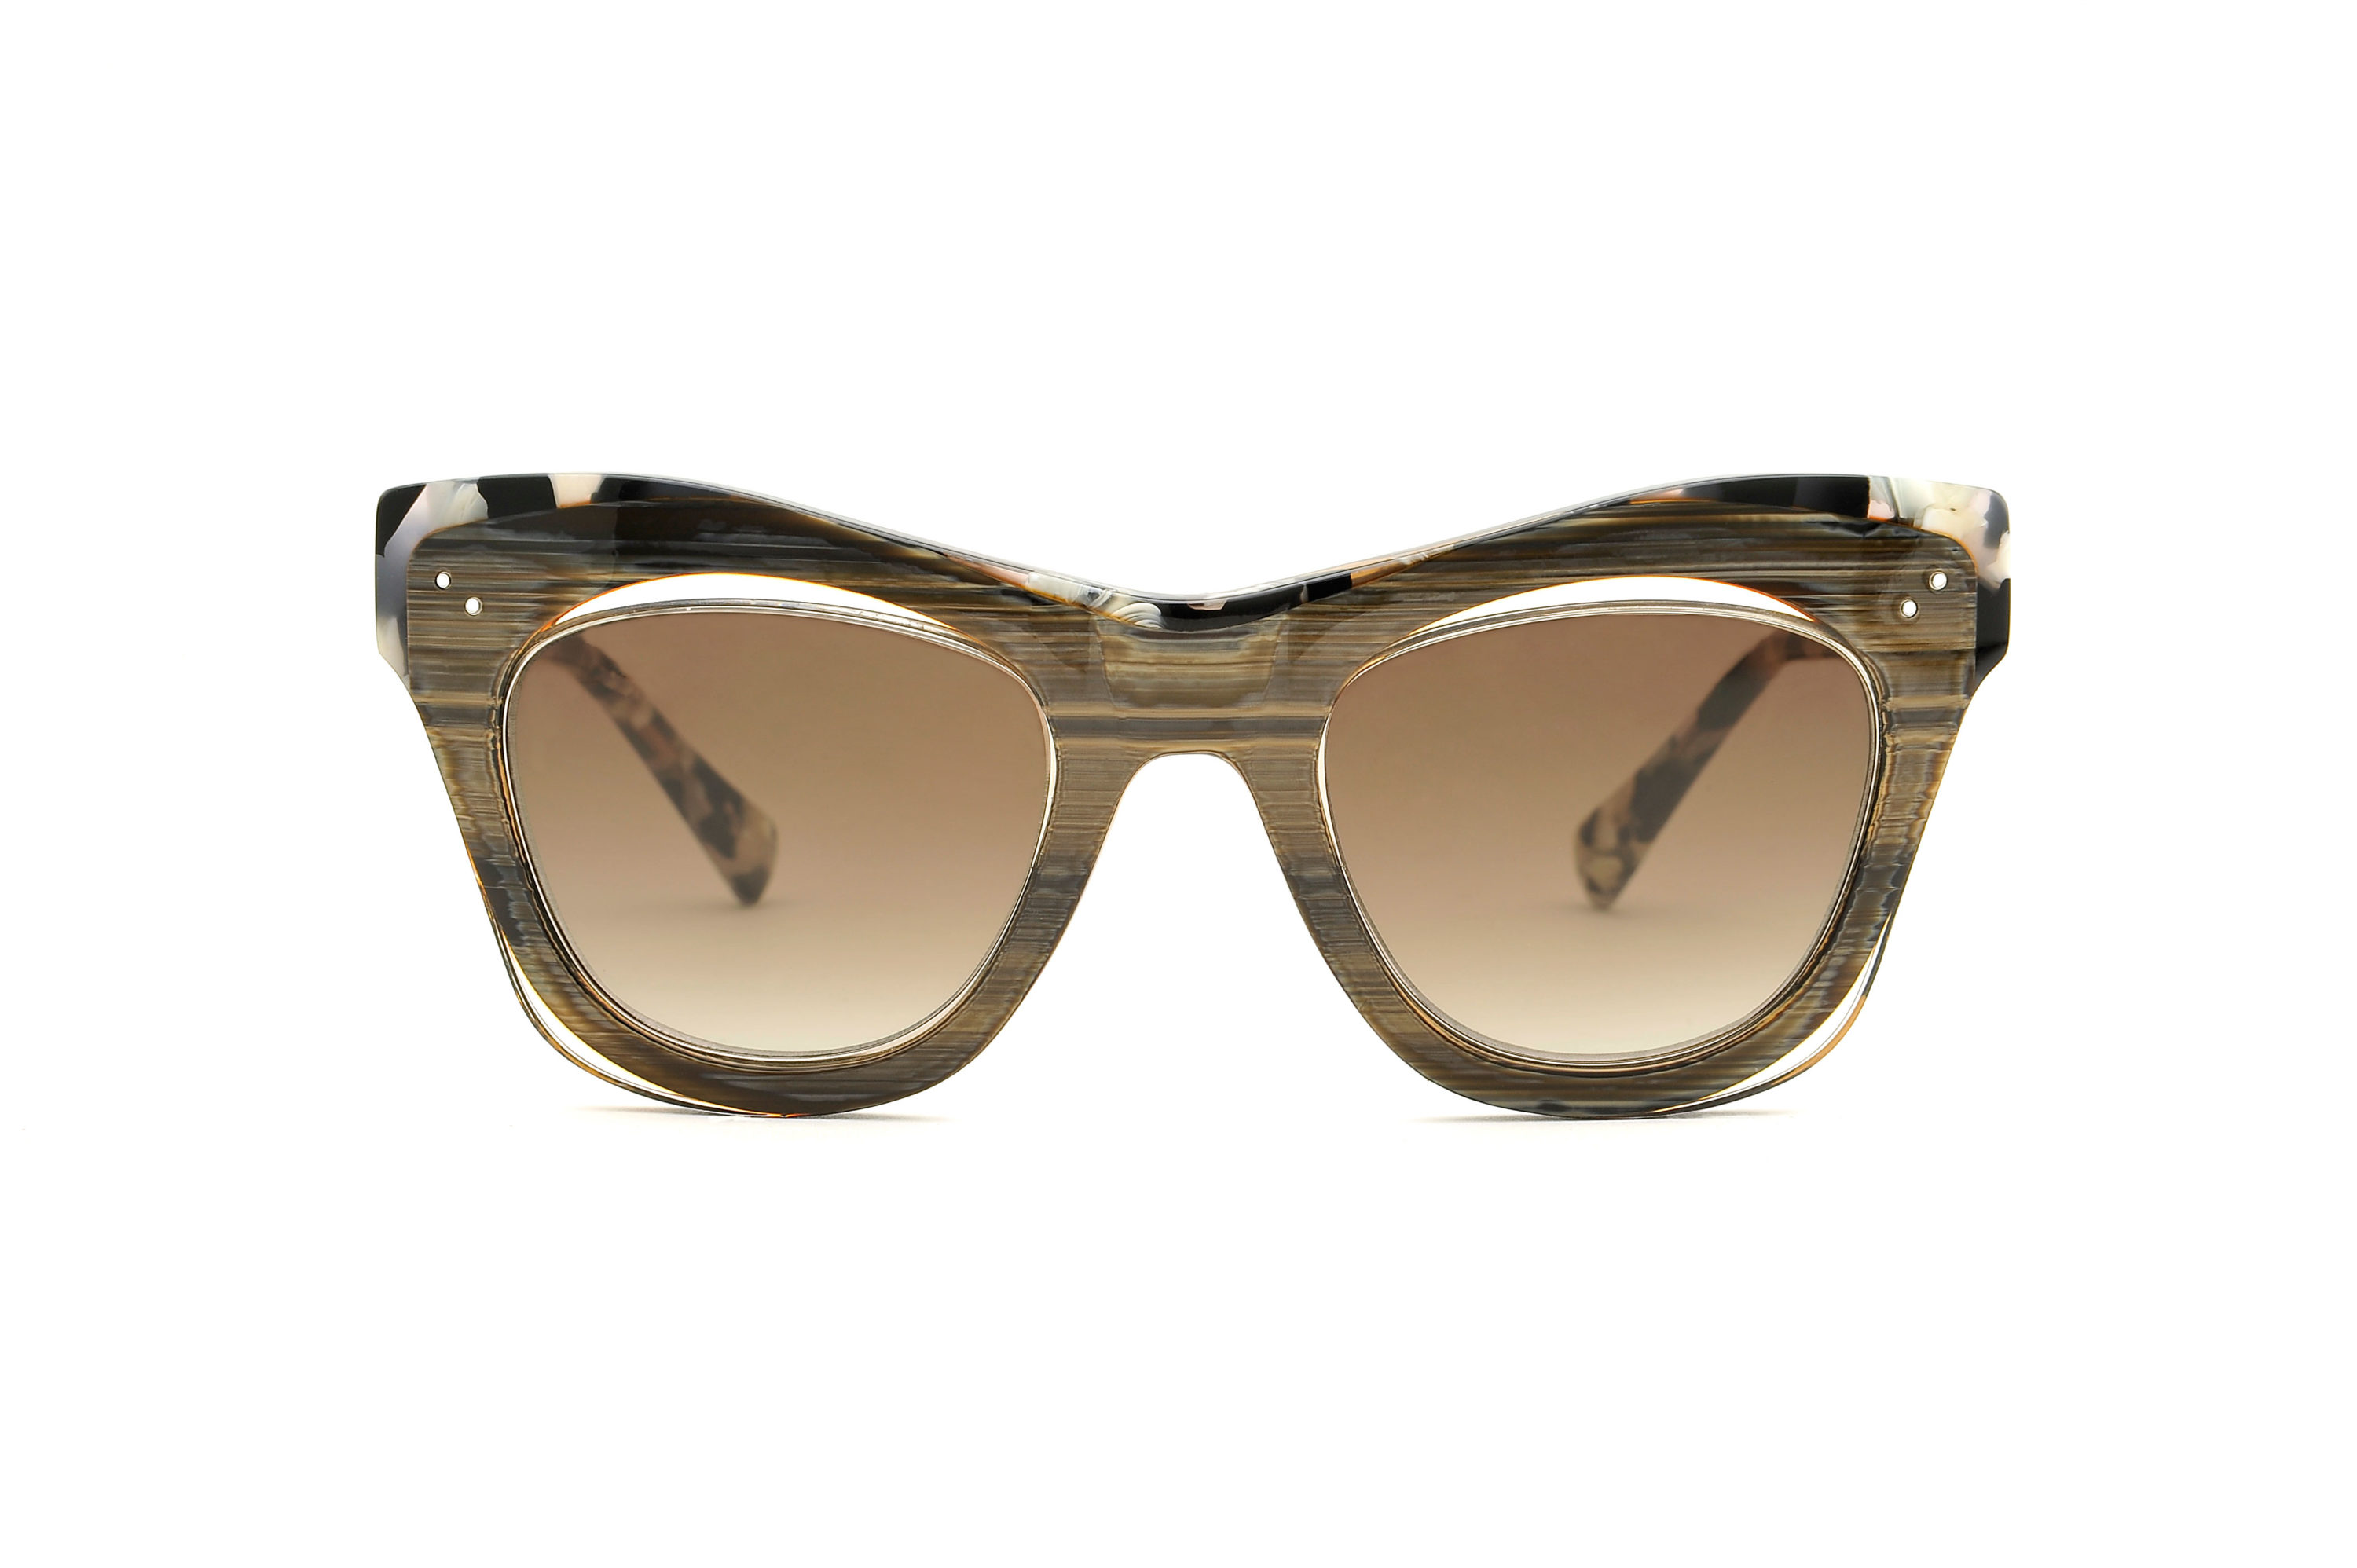 Onix acetate cat eye brown sunglasses by GIGI Studios